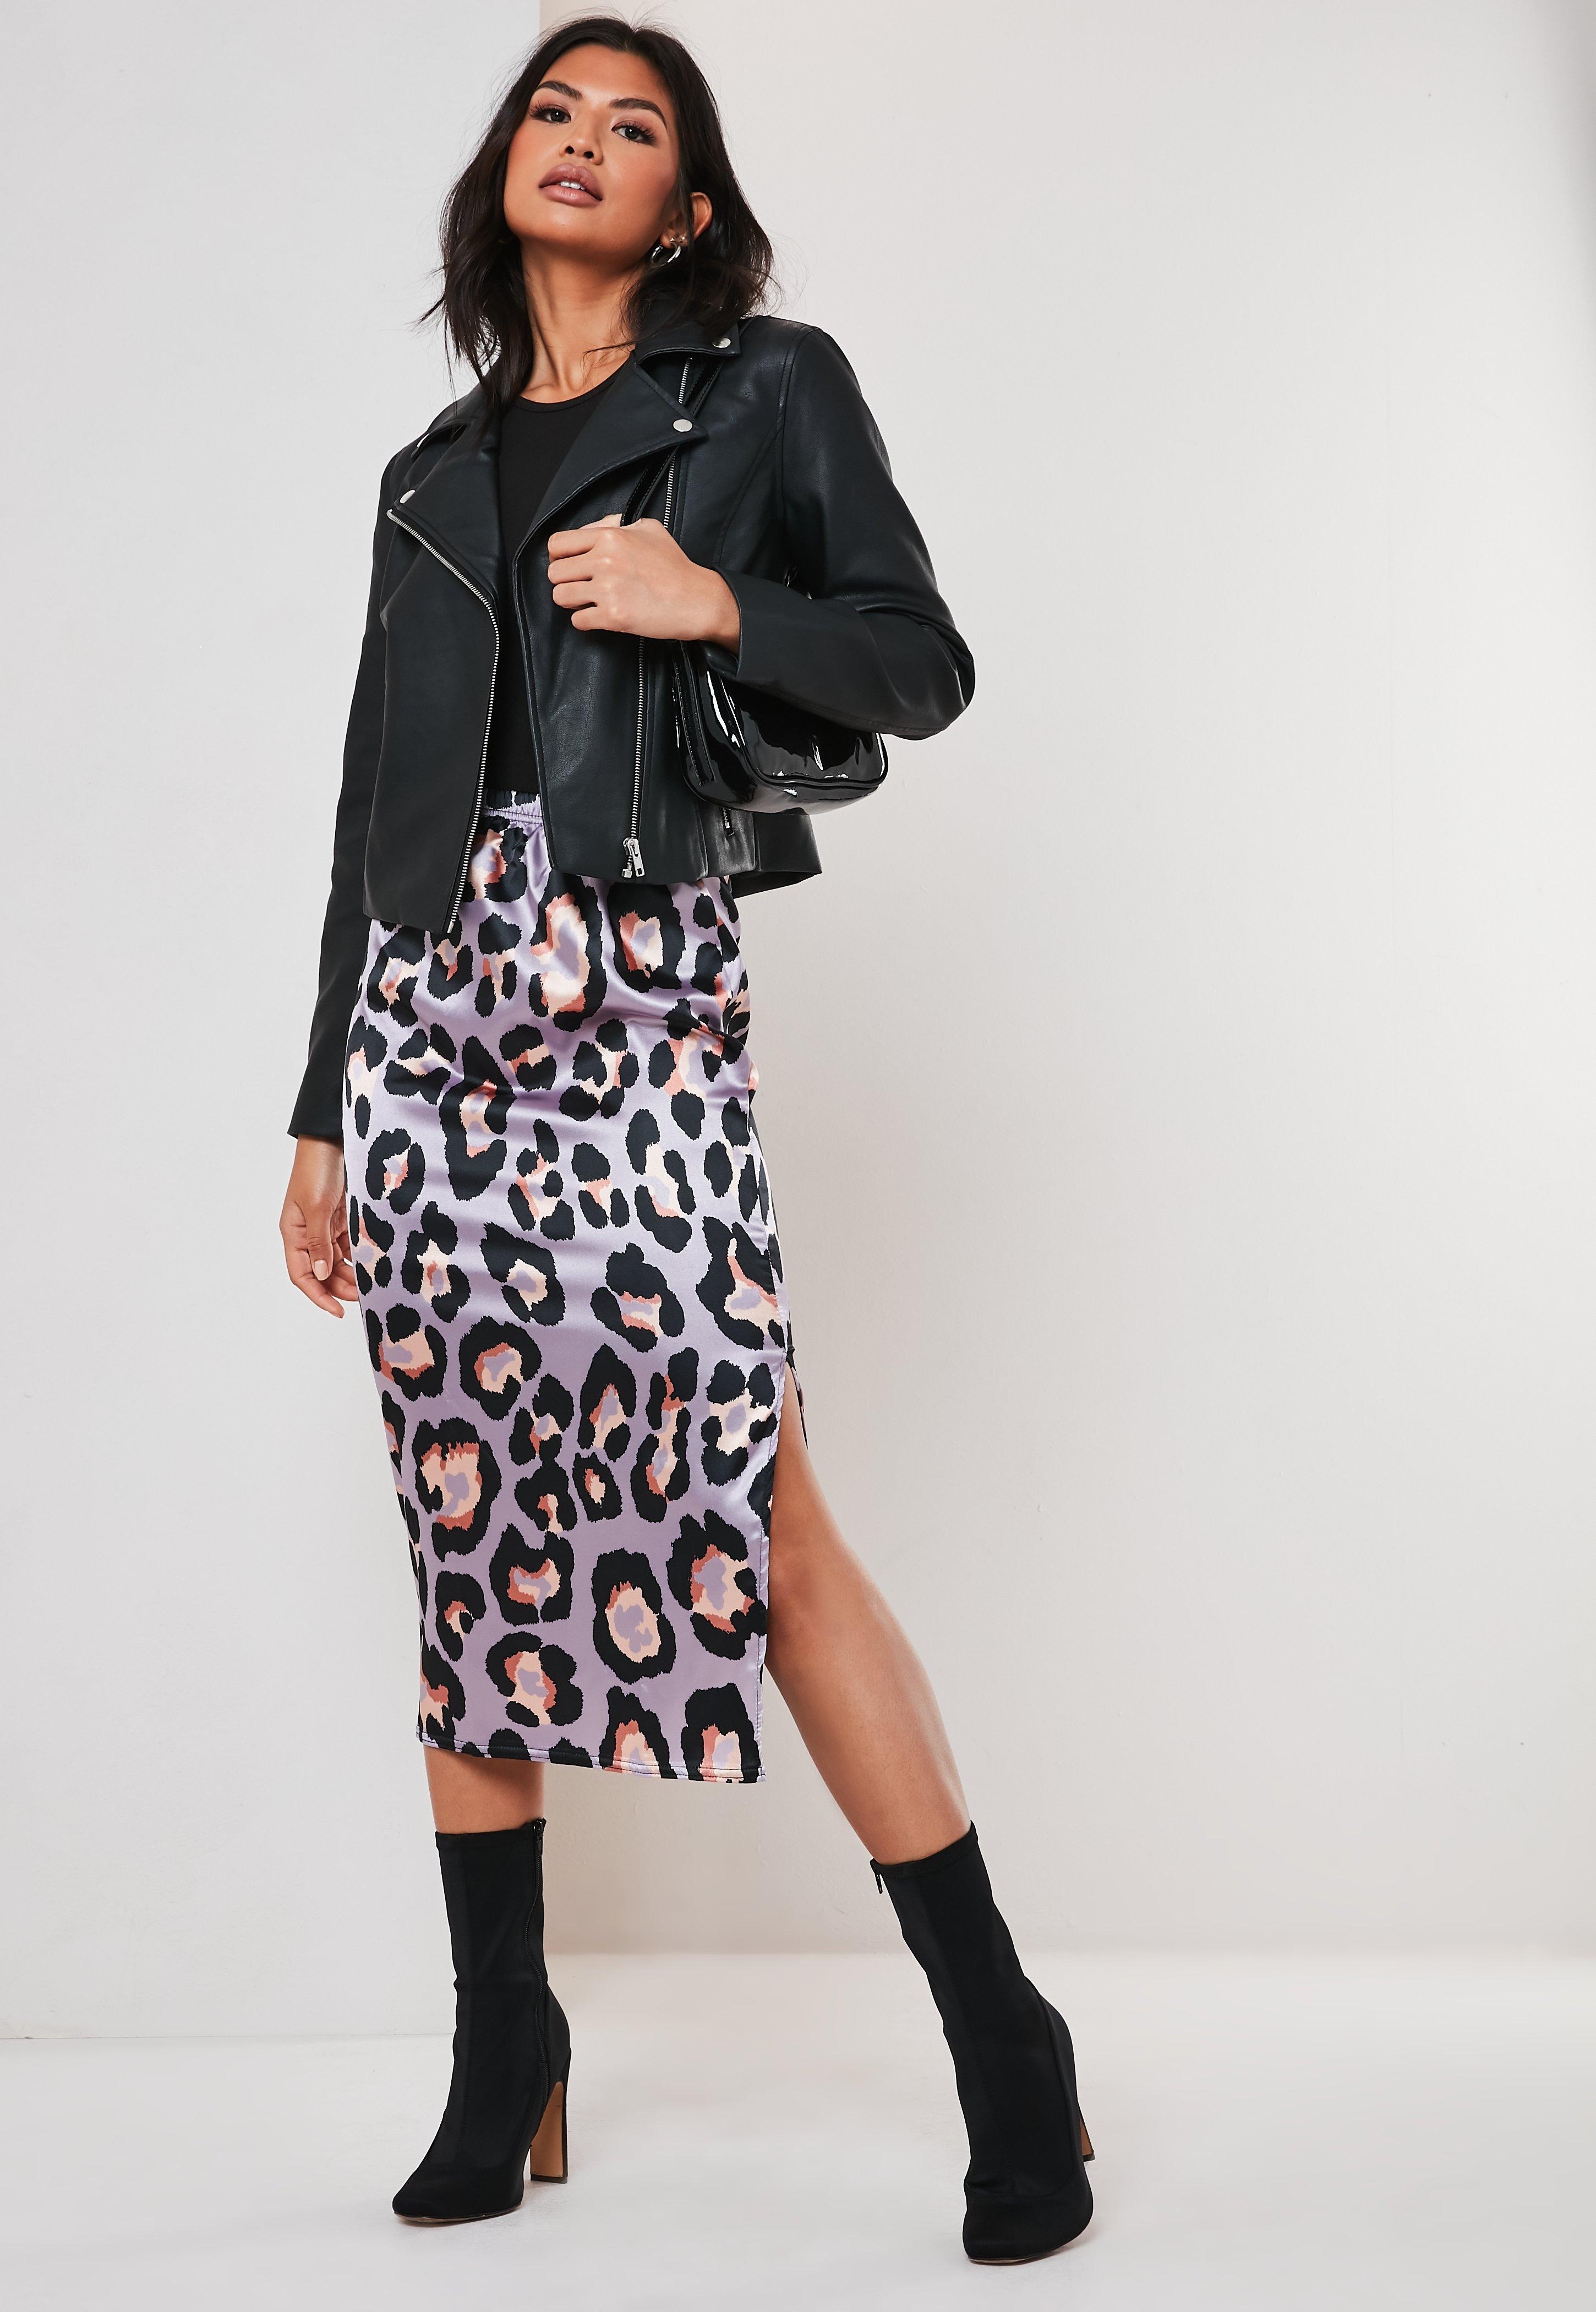 7b7f12eb89 Skirts Online | Shop Women's Skirts - Missguided Ireland